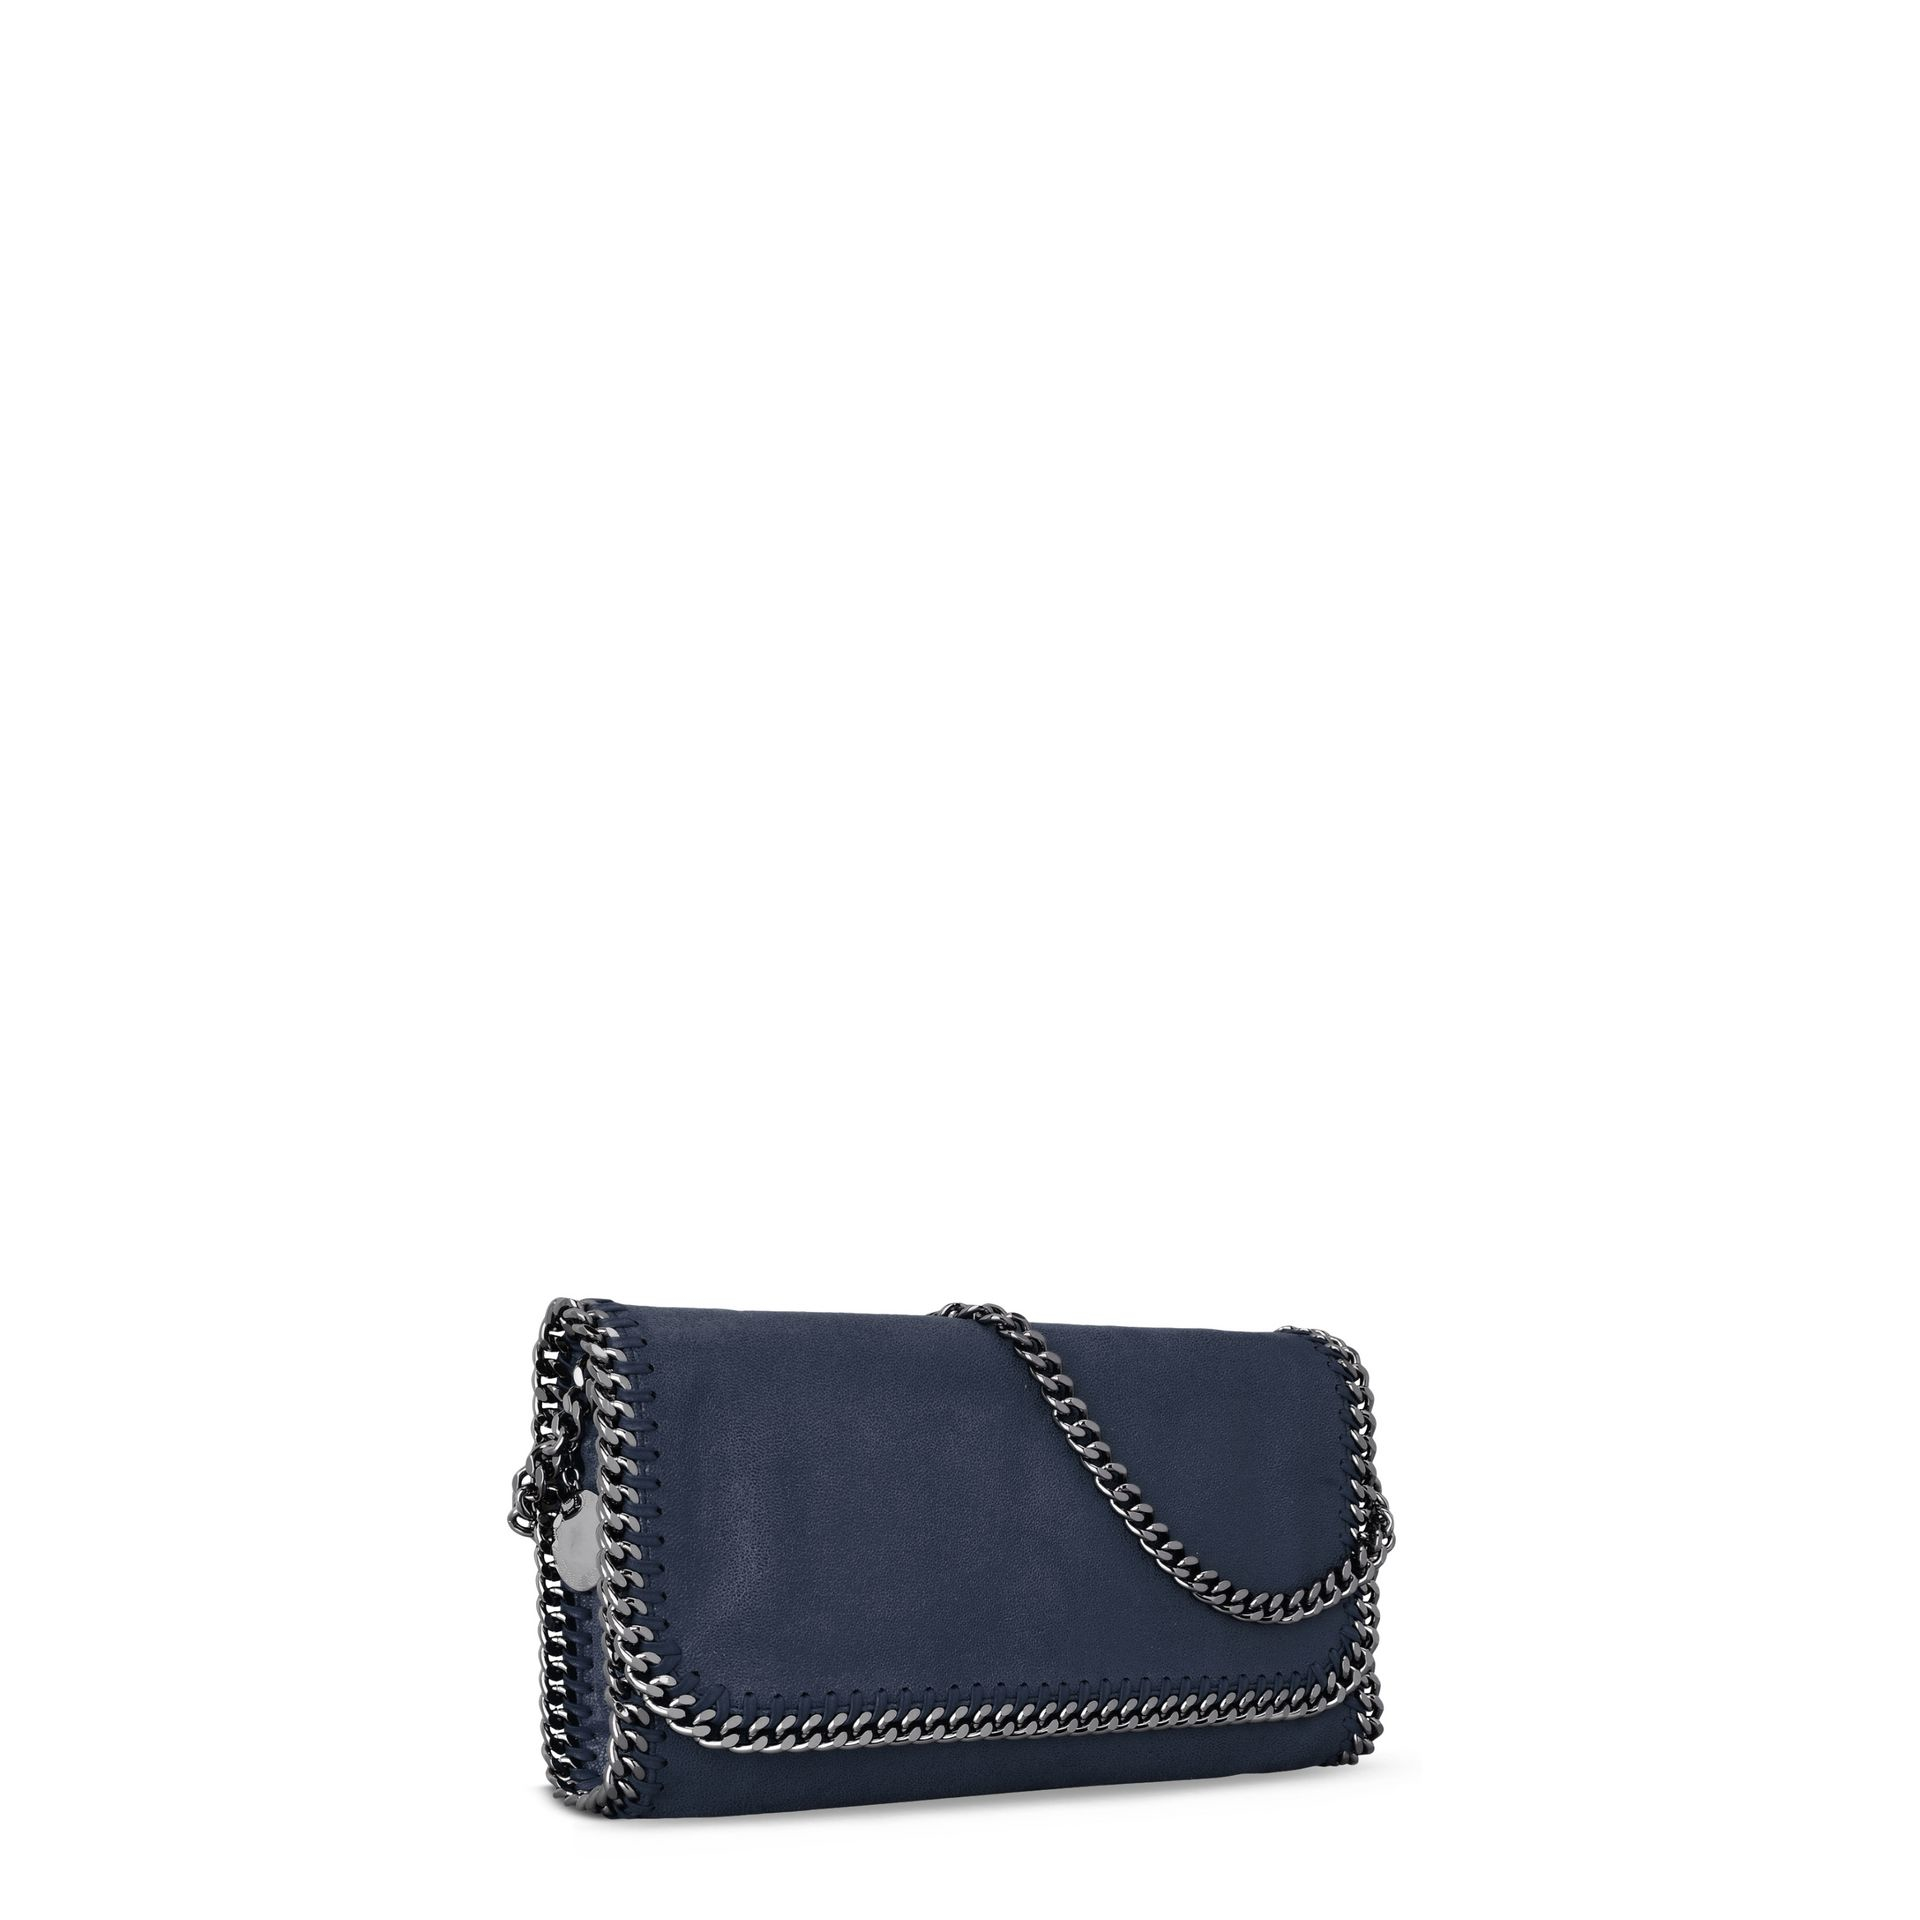 Stella McCartney Navy blue falabella mini shoulder bag kuMGX